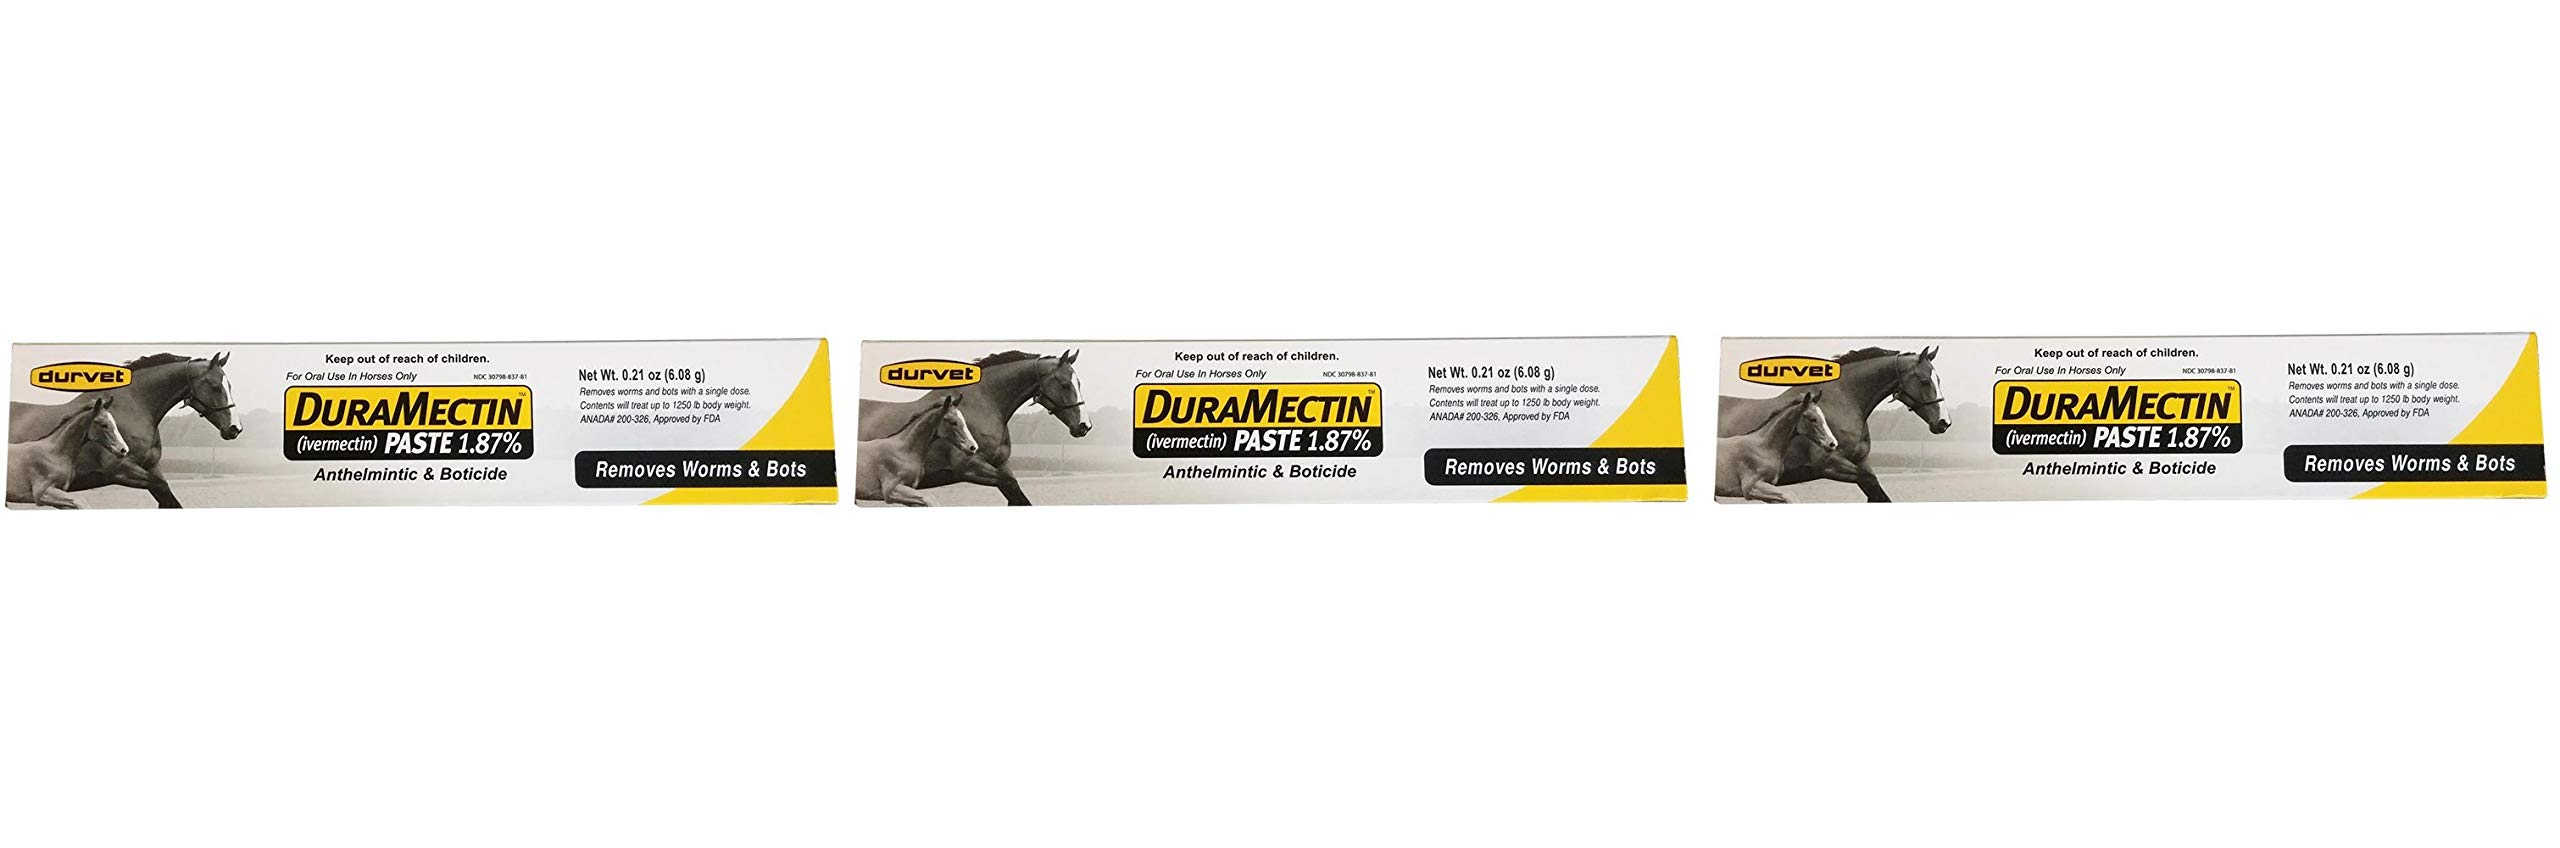 Duramectin Ivermectin Paste 1.87% for Horses, 0.21 oz (Thrее Рack) by Durvet